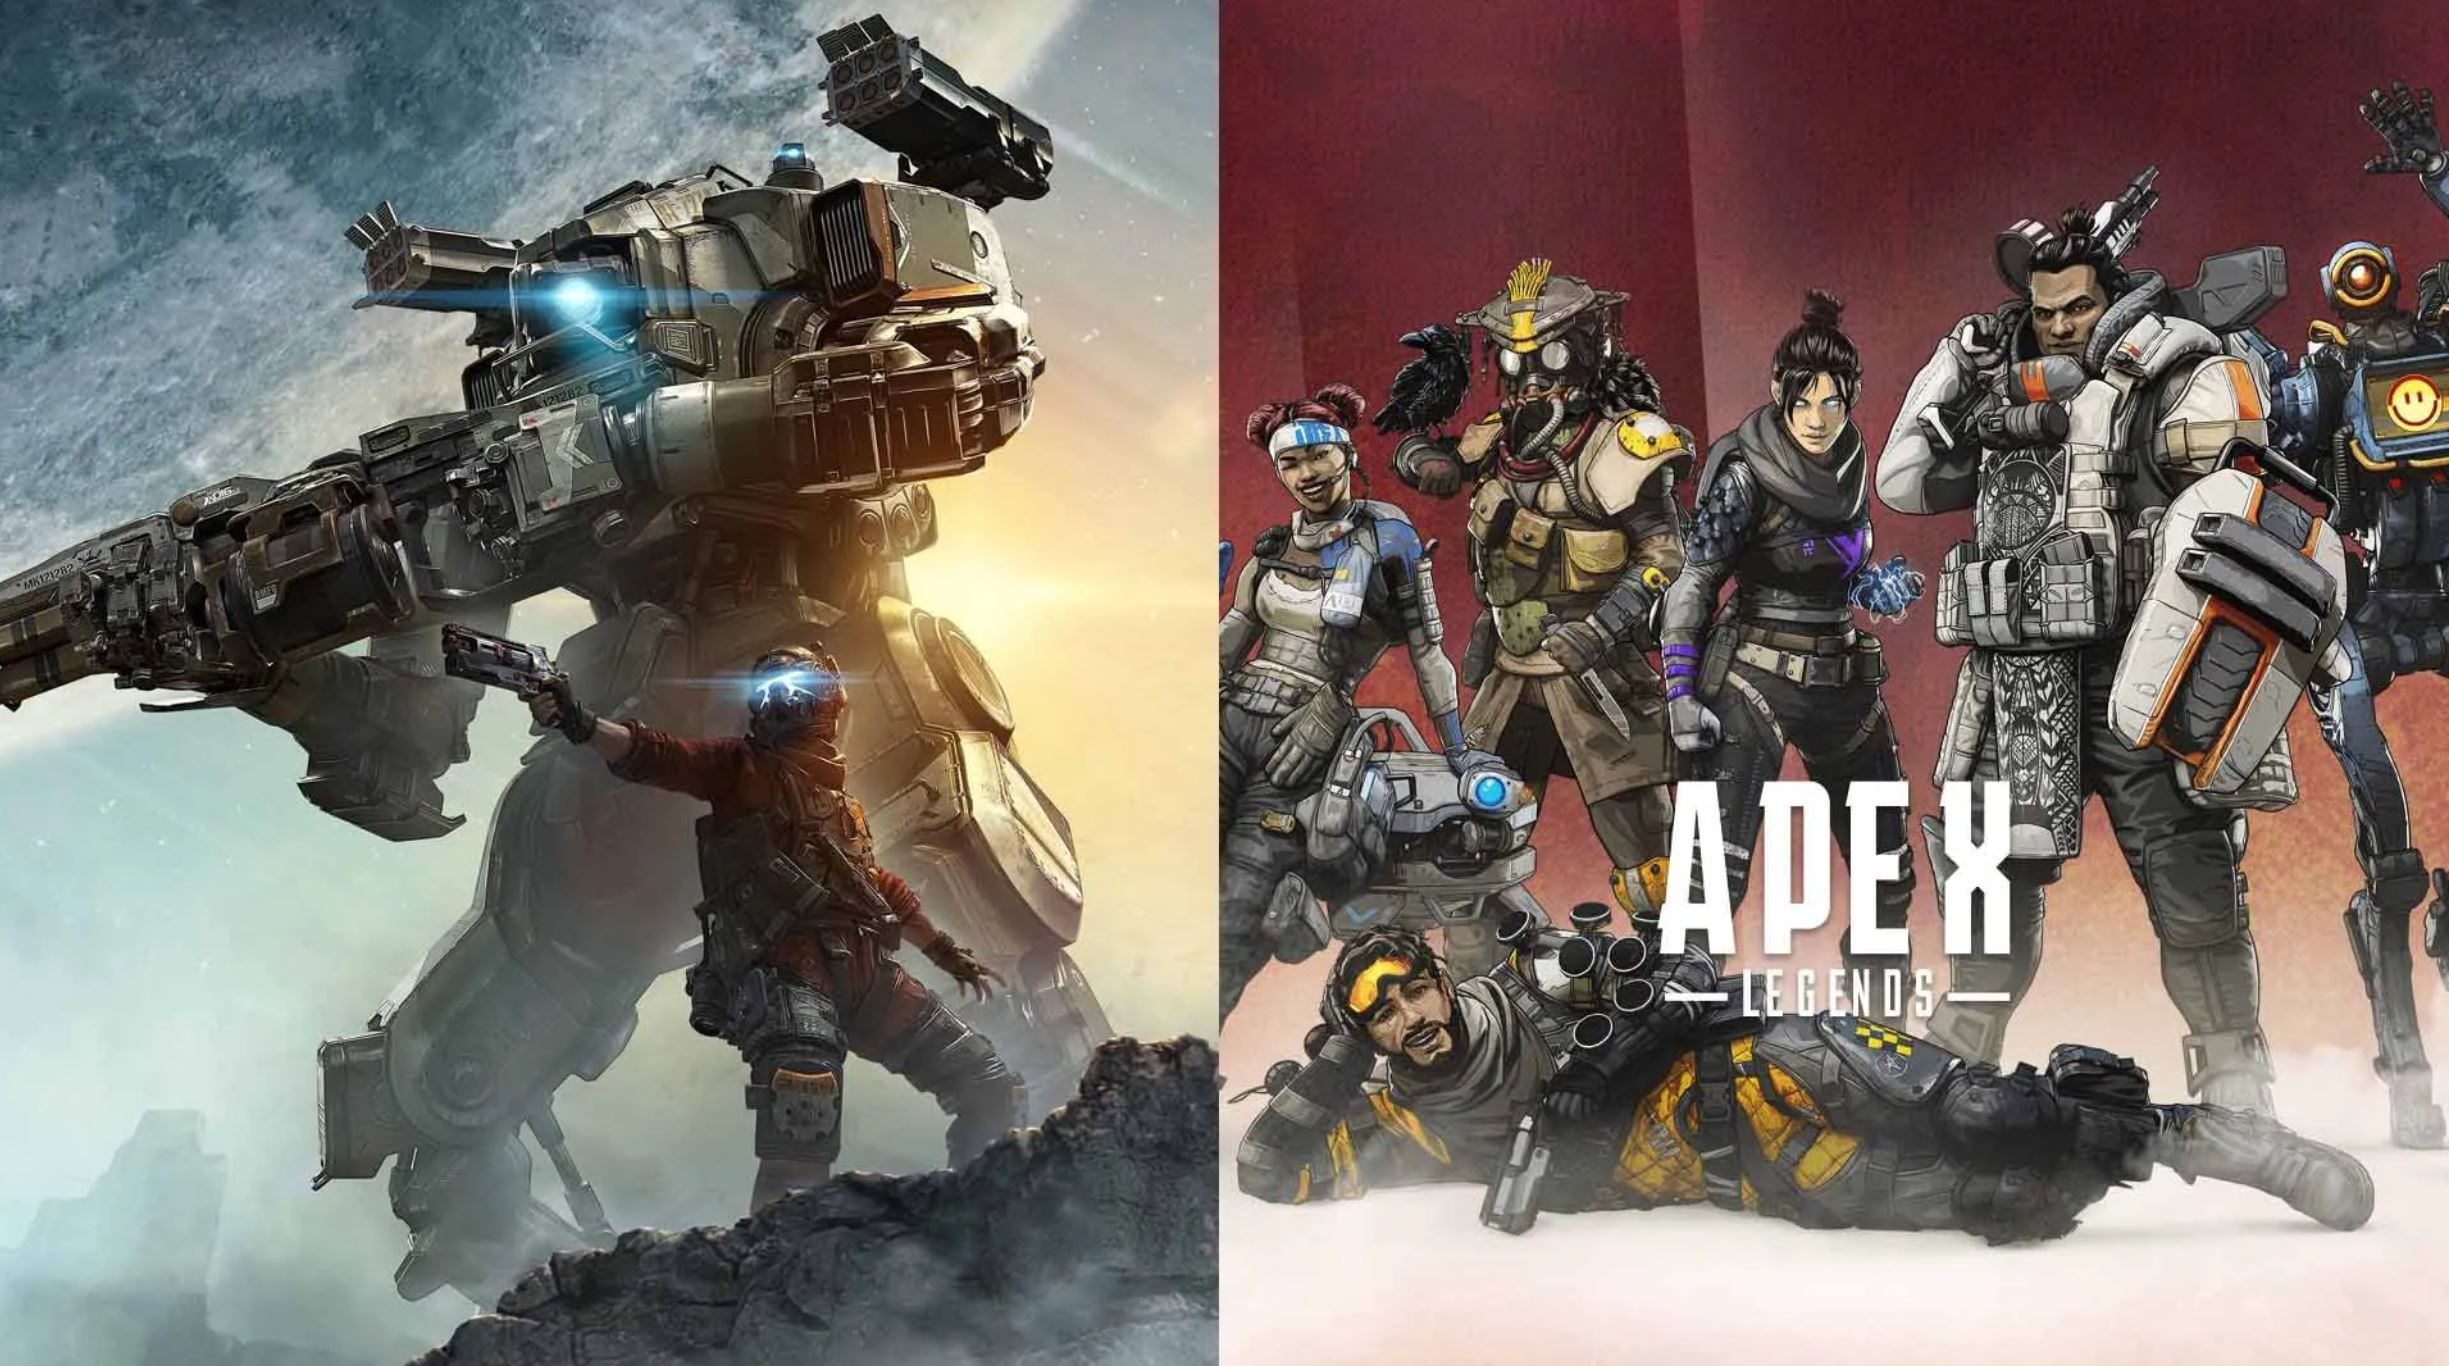 Titanfall 3 and Apex Legend